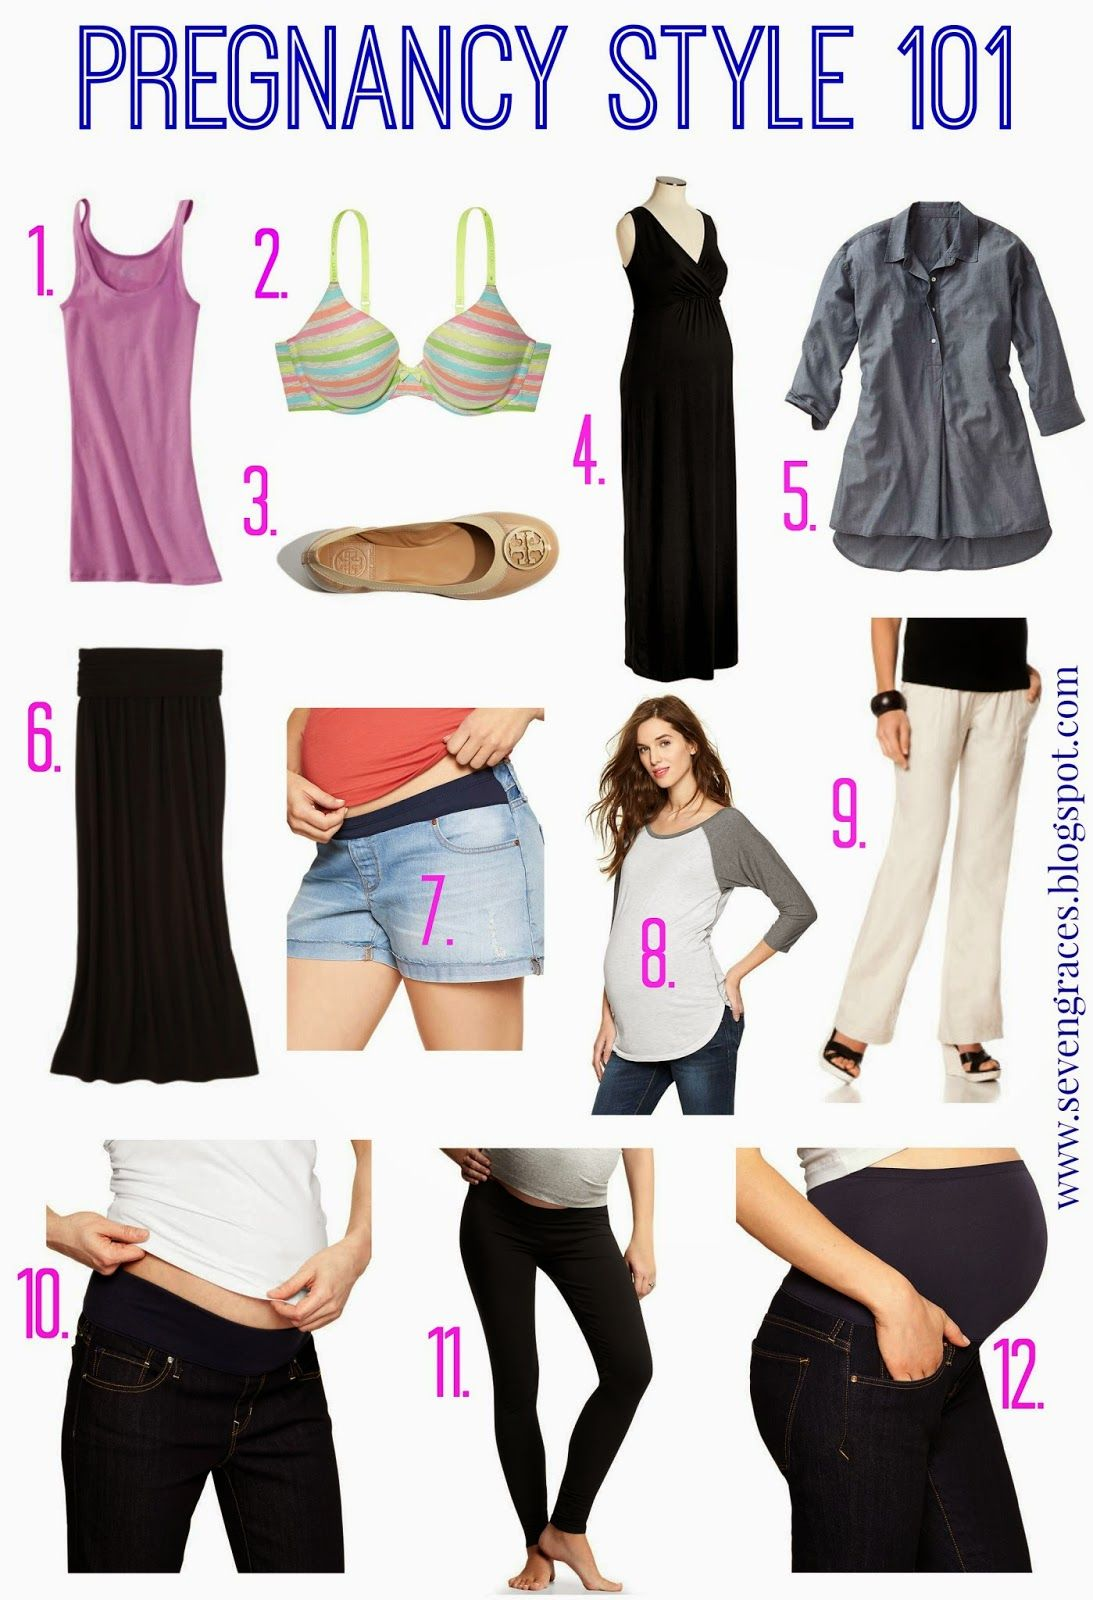 5bd47d1fce5 Pregnancy Style 101  Must-Have Maternity Clothing by Seven Graces   maternityfashion  maternity  pregnancy101  newmama101